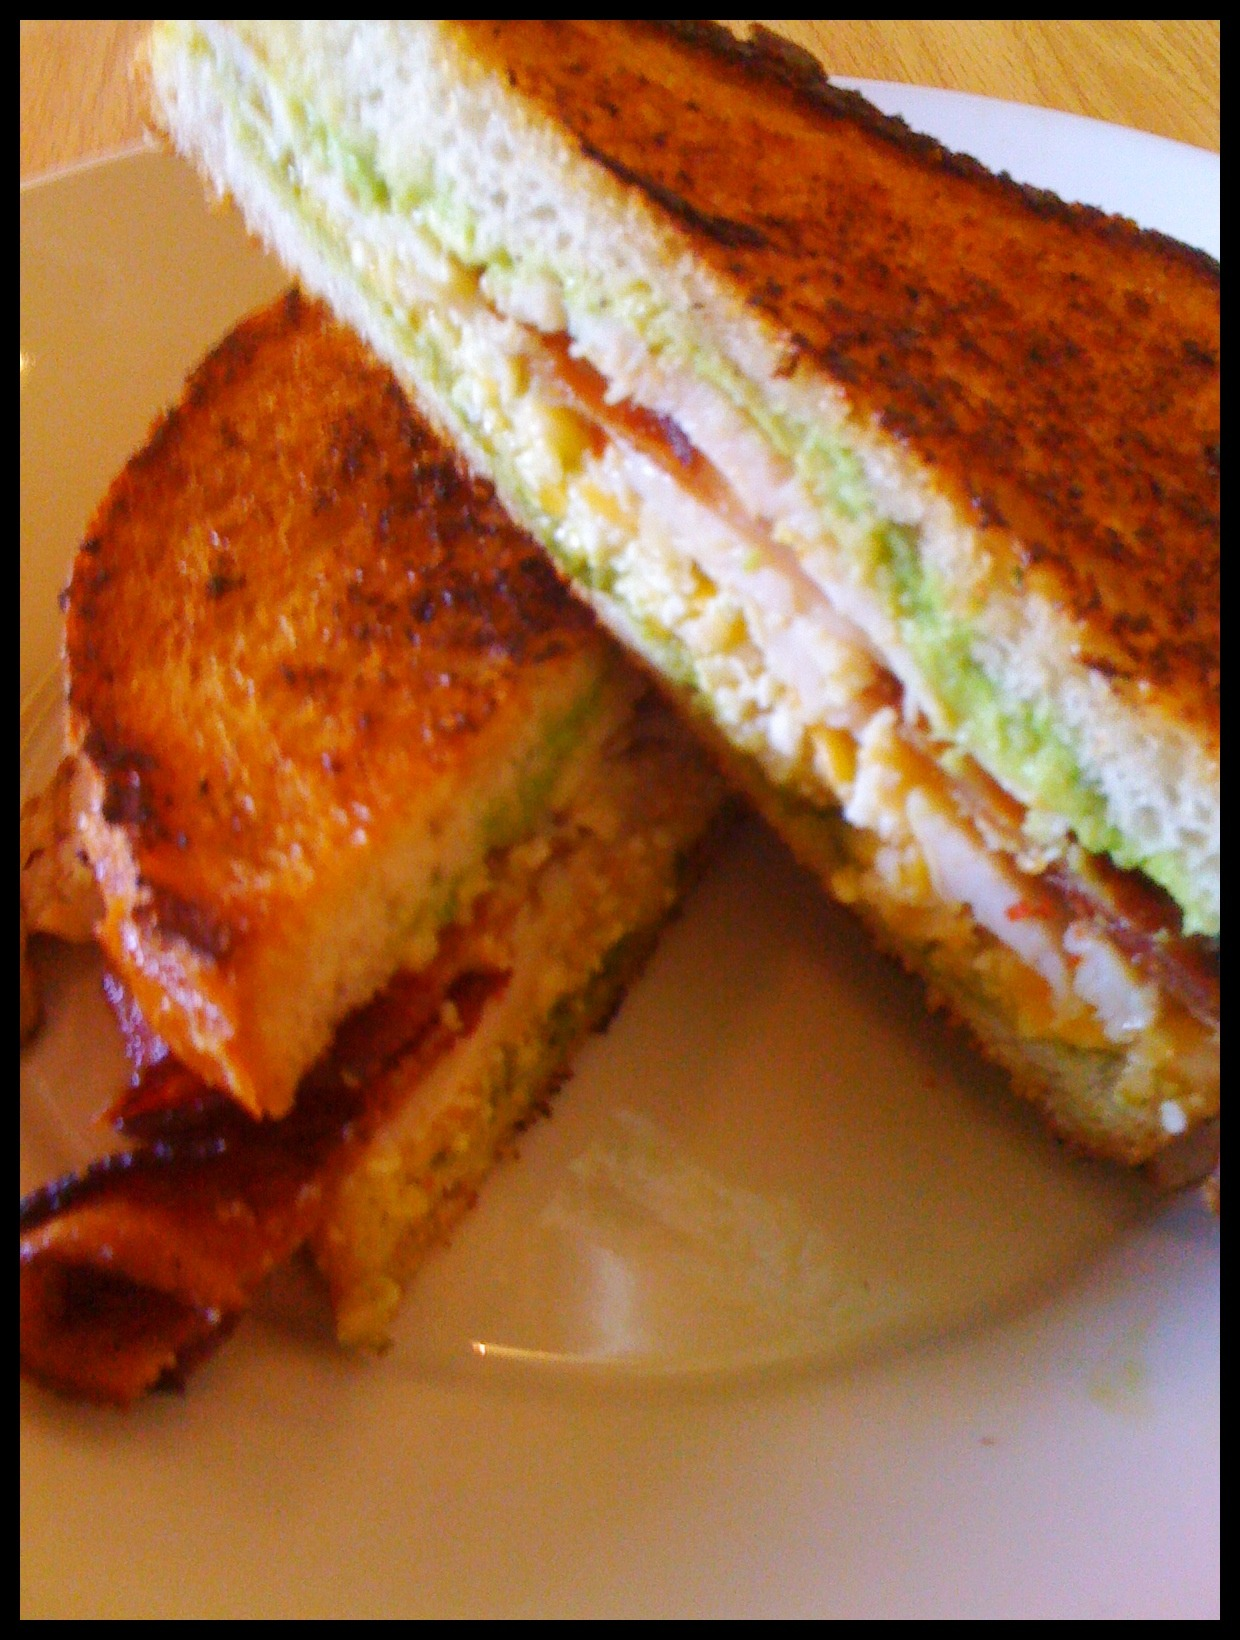 Sandwich from Custom Melt, Moorpark, California.